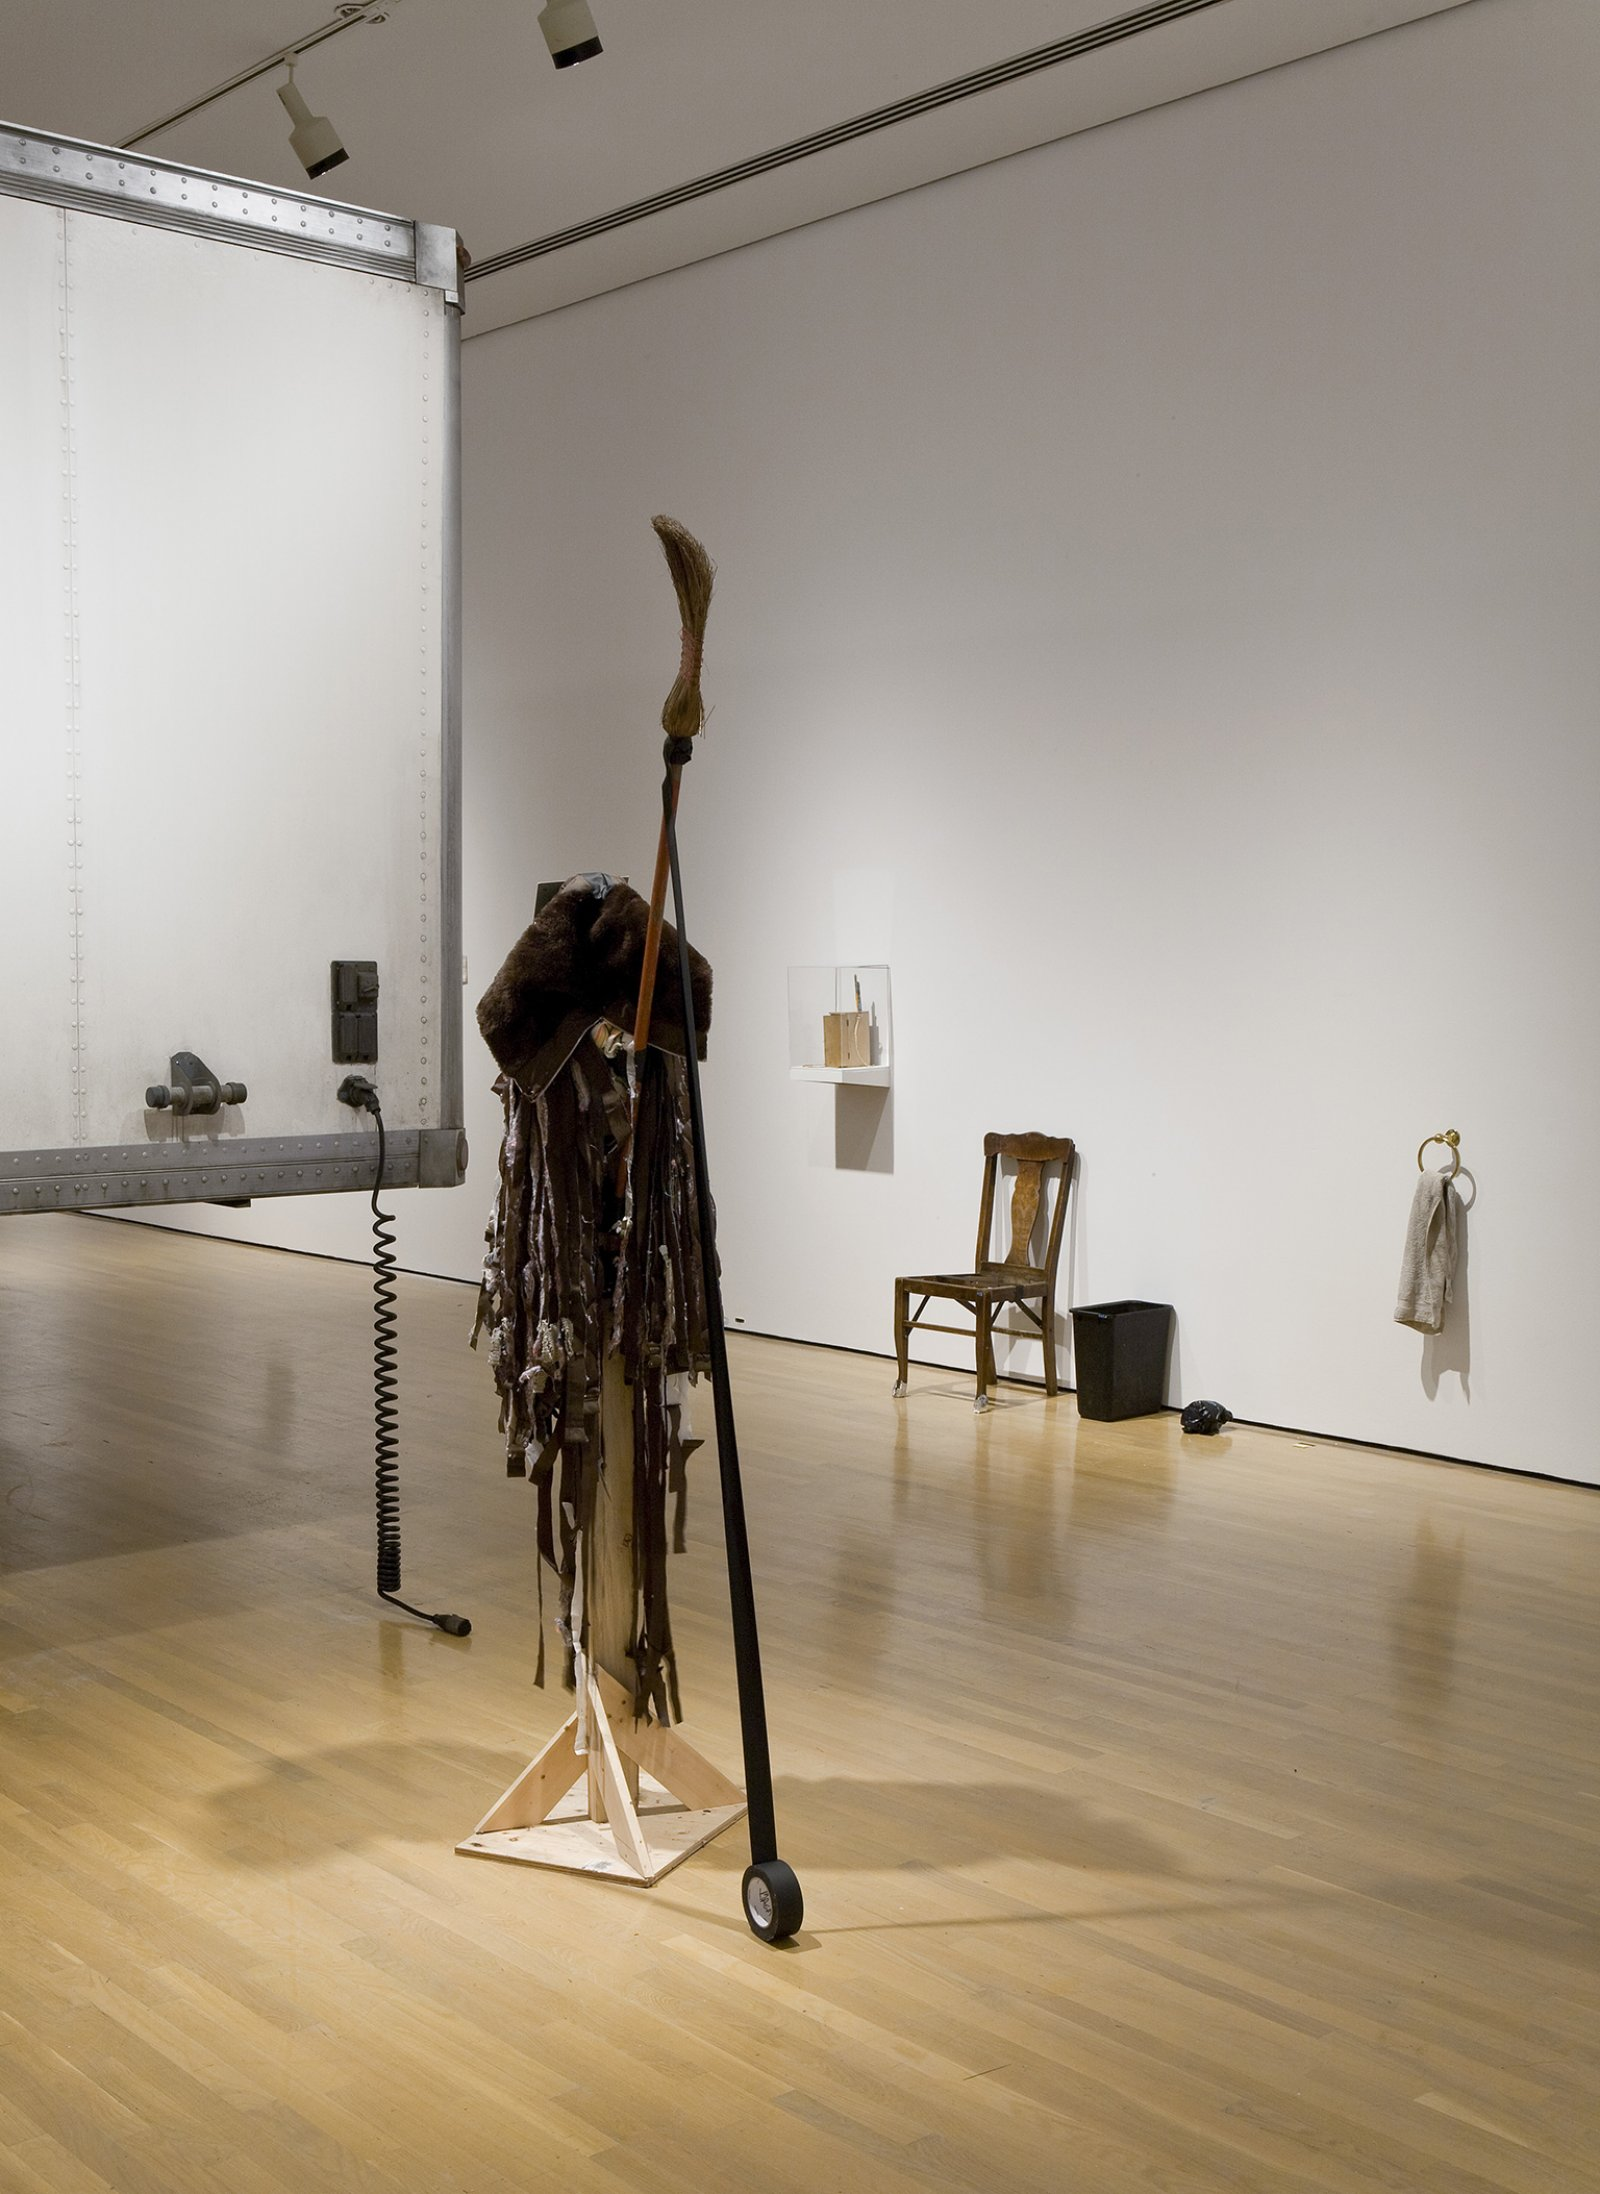 Geoffrey Farmer, I am by nature one and also many, dividing the single me into many, and even opposing them as great and small, light and dark, and in ten thousand other ways, 2006–2008, mixed media, dimensions variable by Geoffrey Farmer